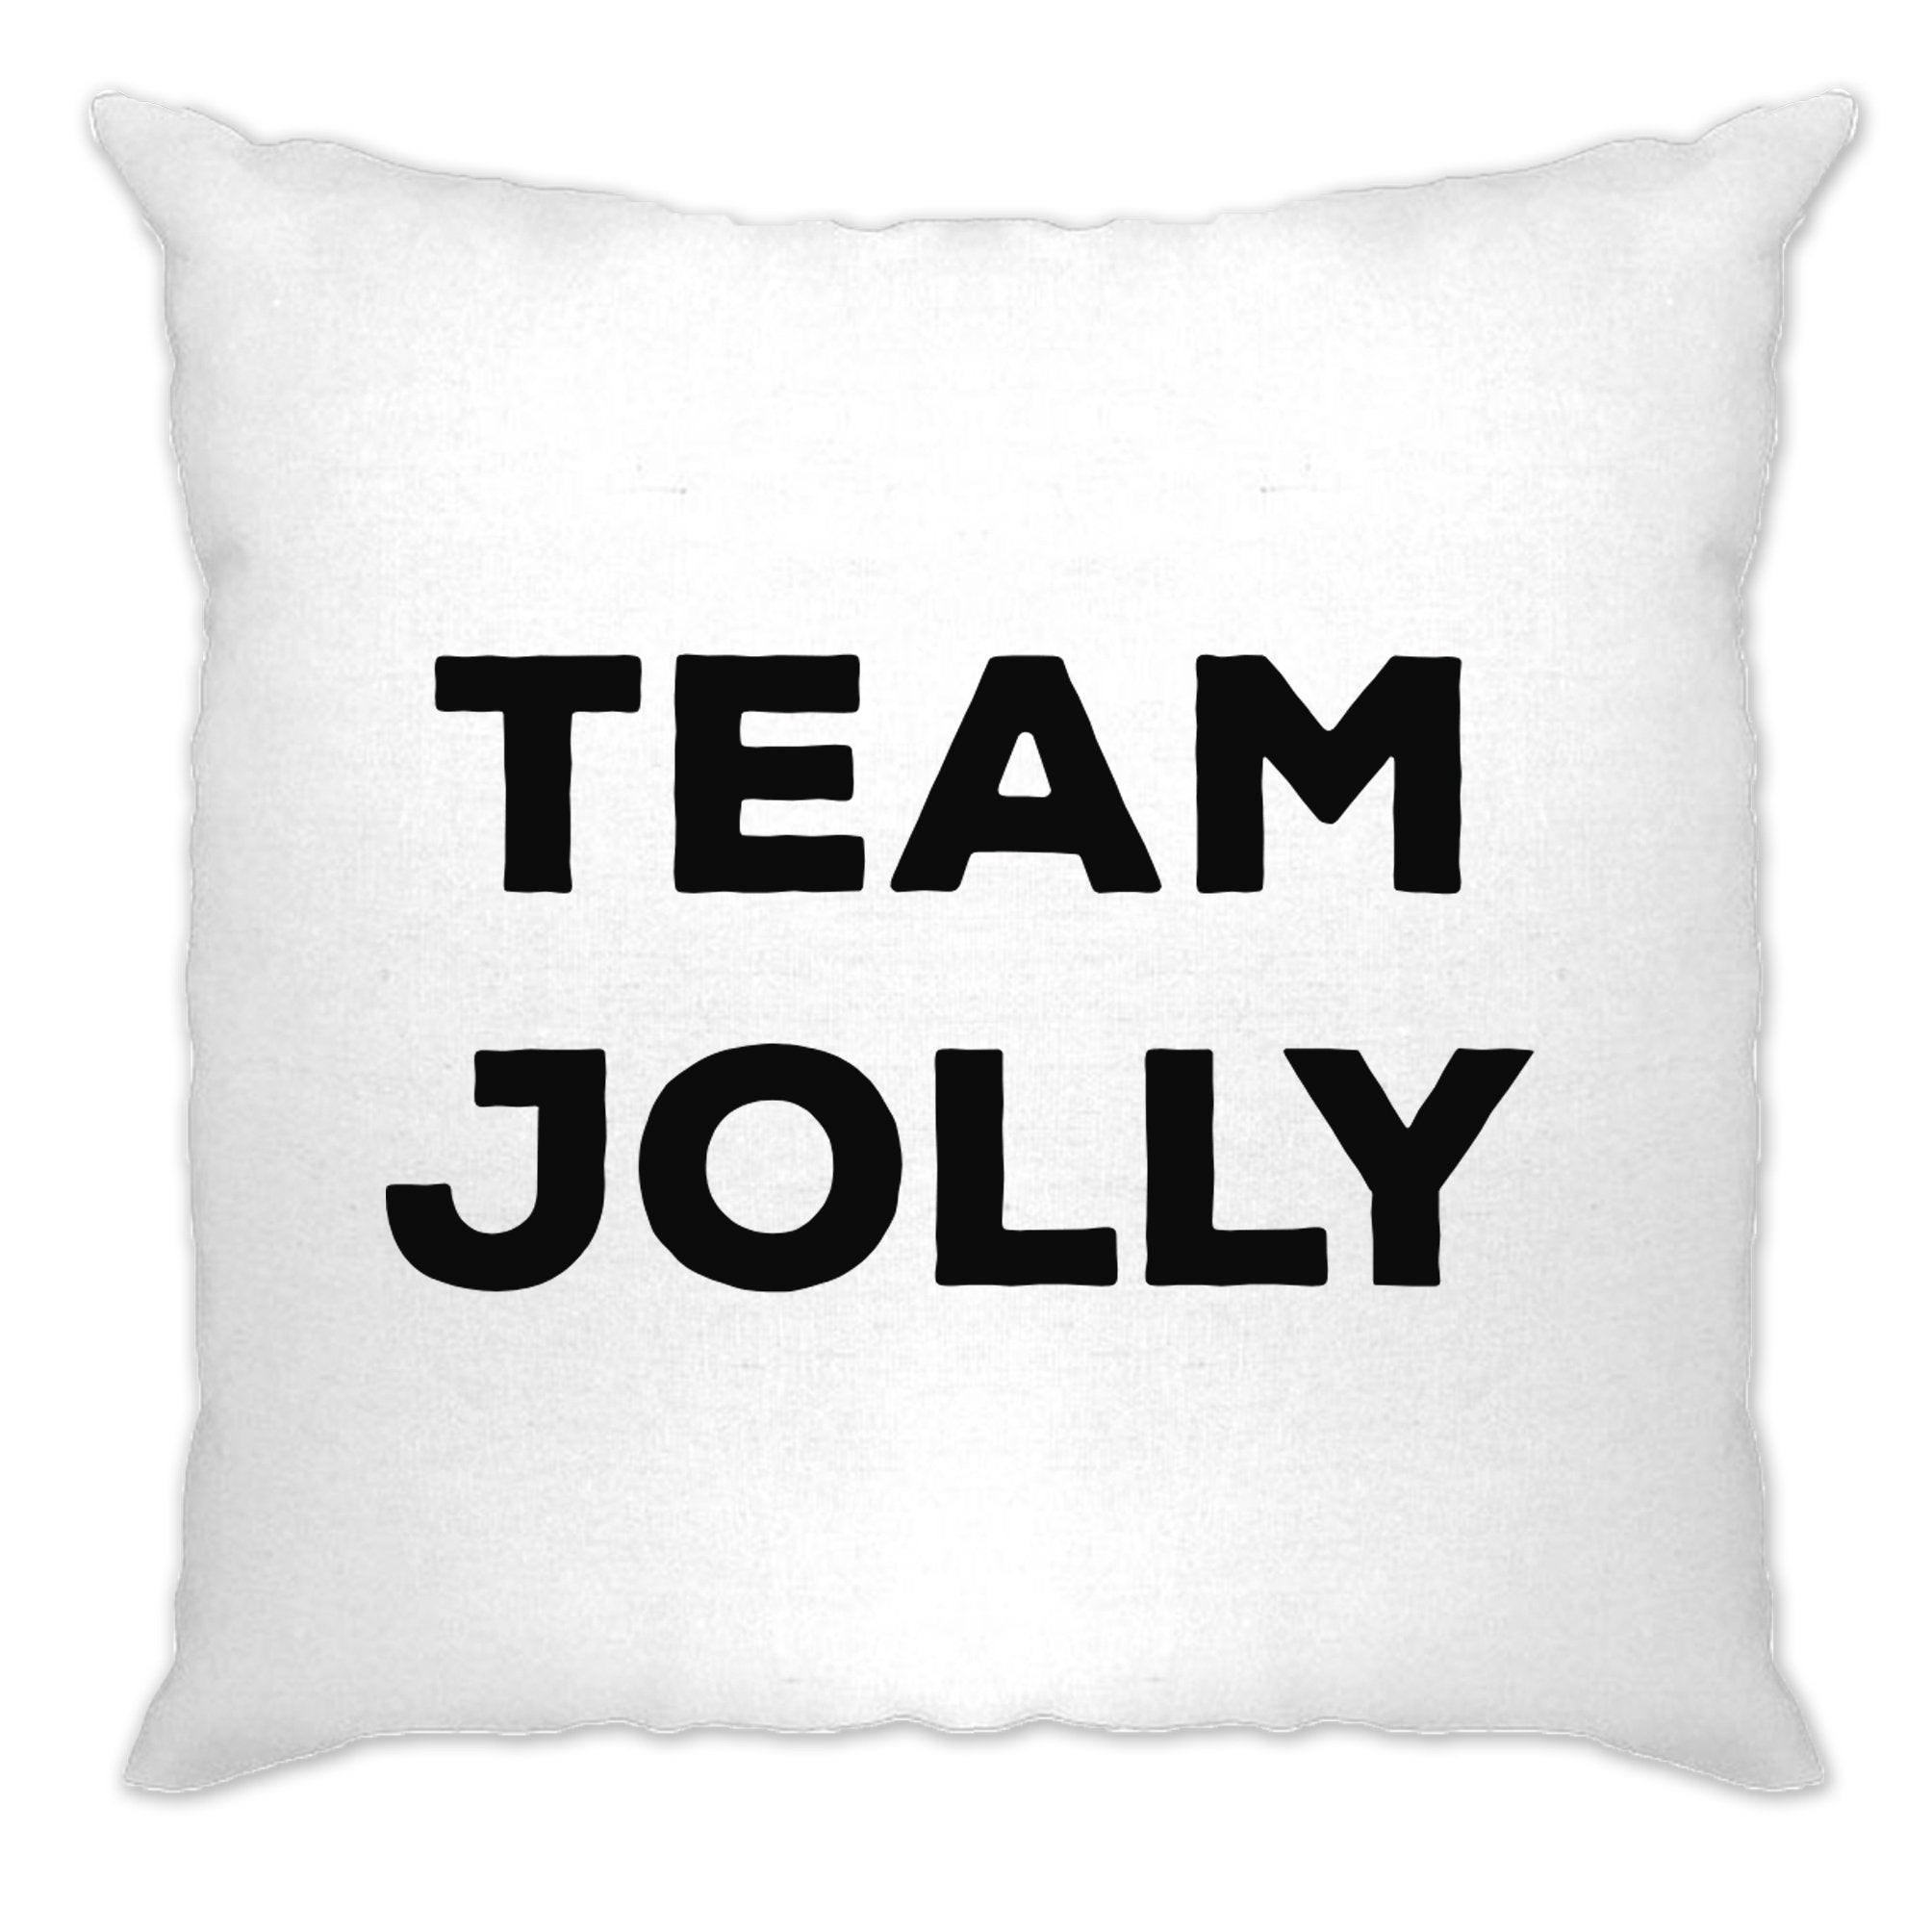 Novelty Christmas Cushion Cover Team Jolly Slogan